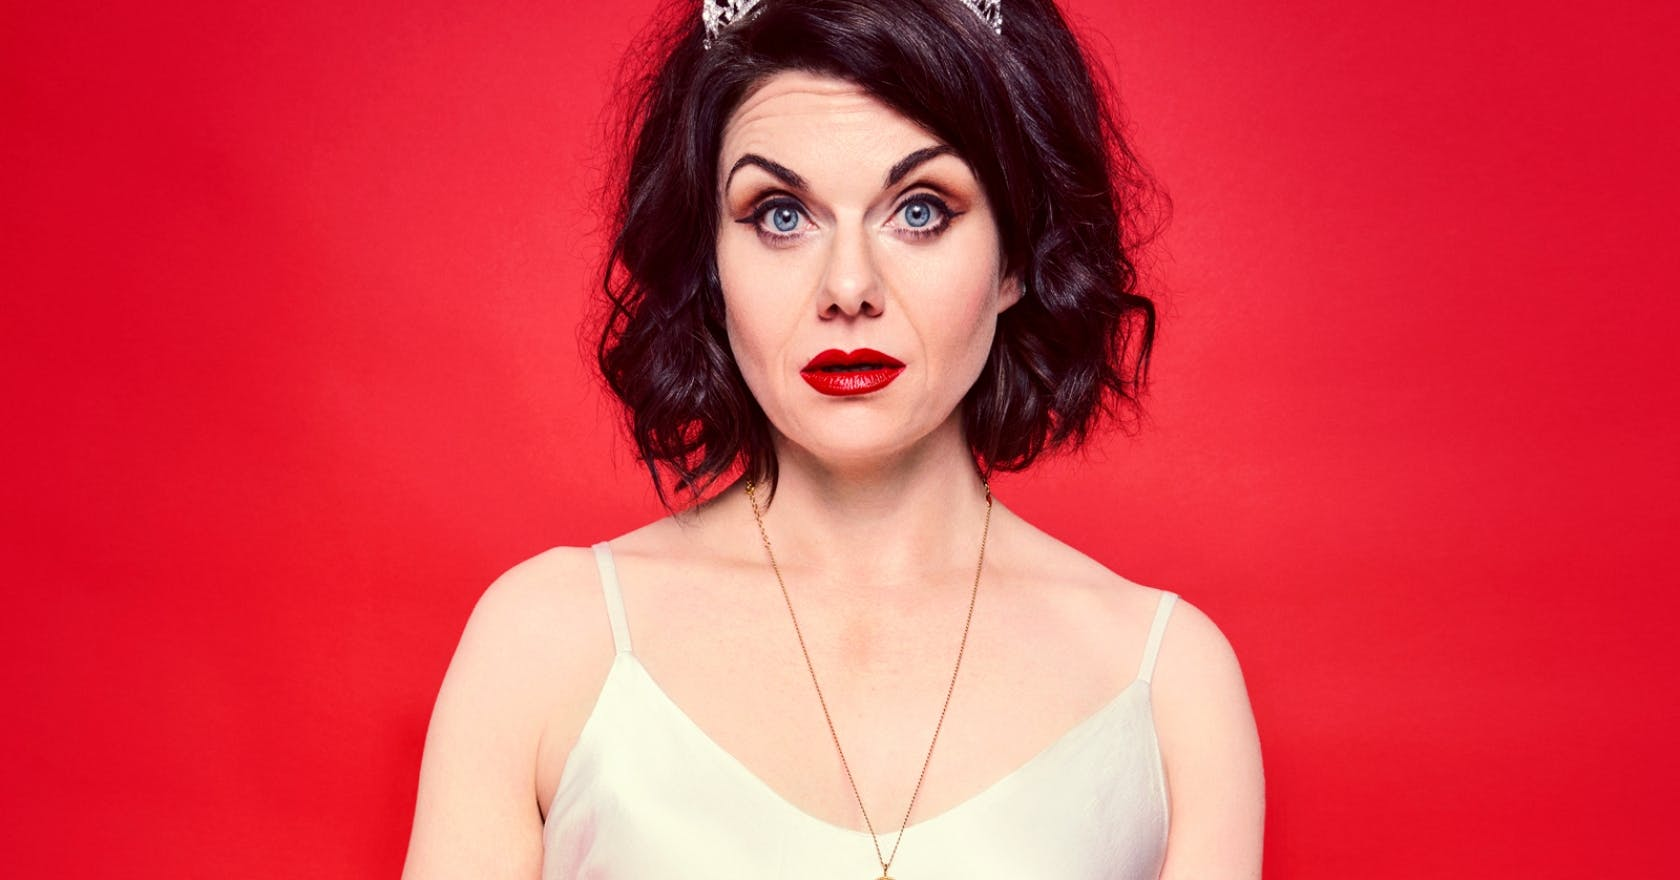 These Nineties looks are back, and Caitlin Moran's loving it